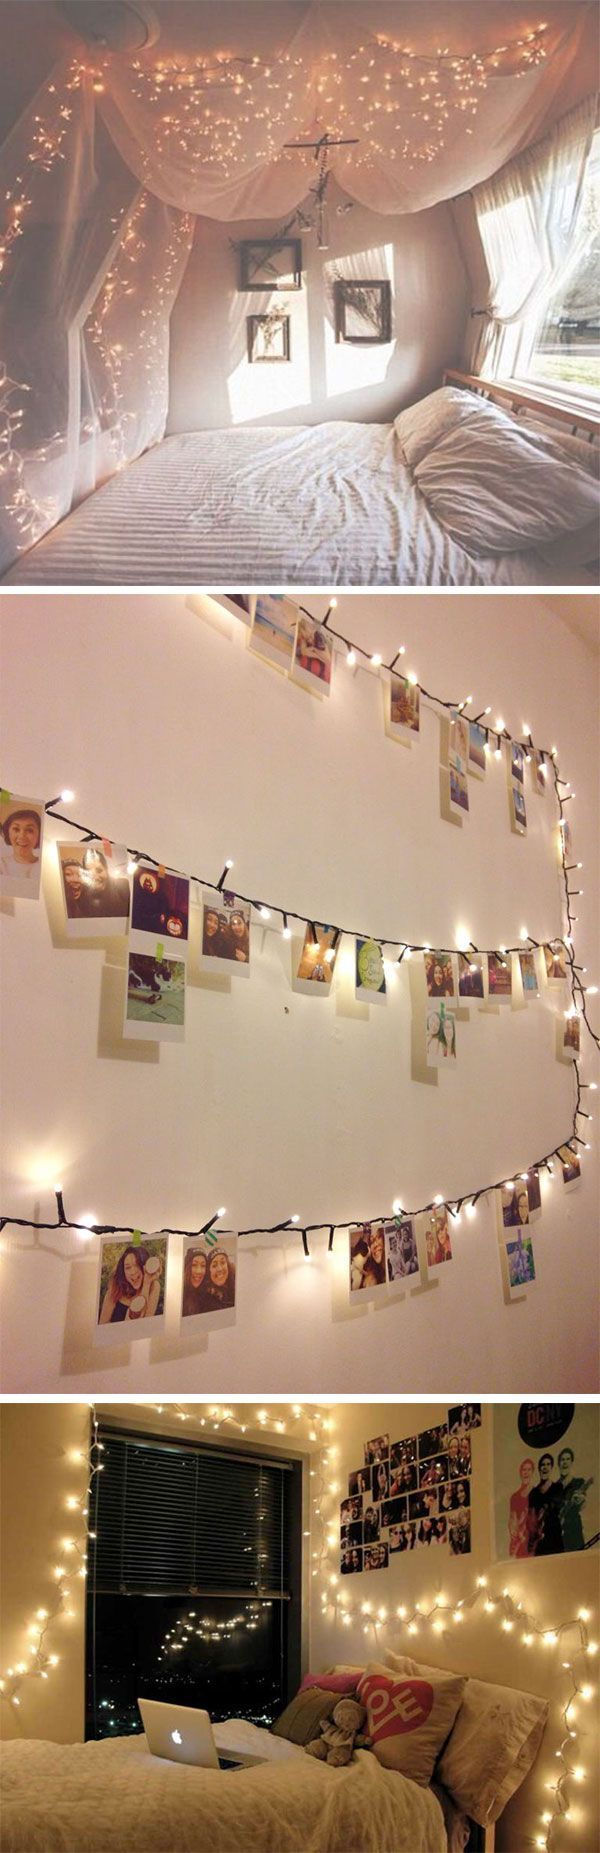 13 Ways To Use Fairy Lights To Make Your Home Look Magical Part 73